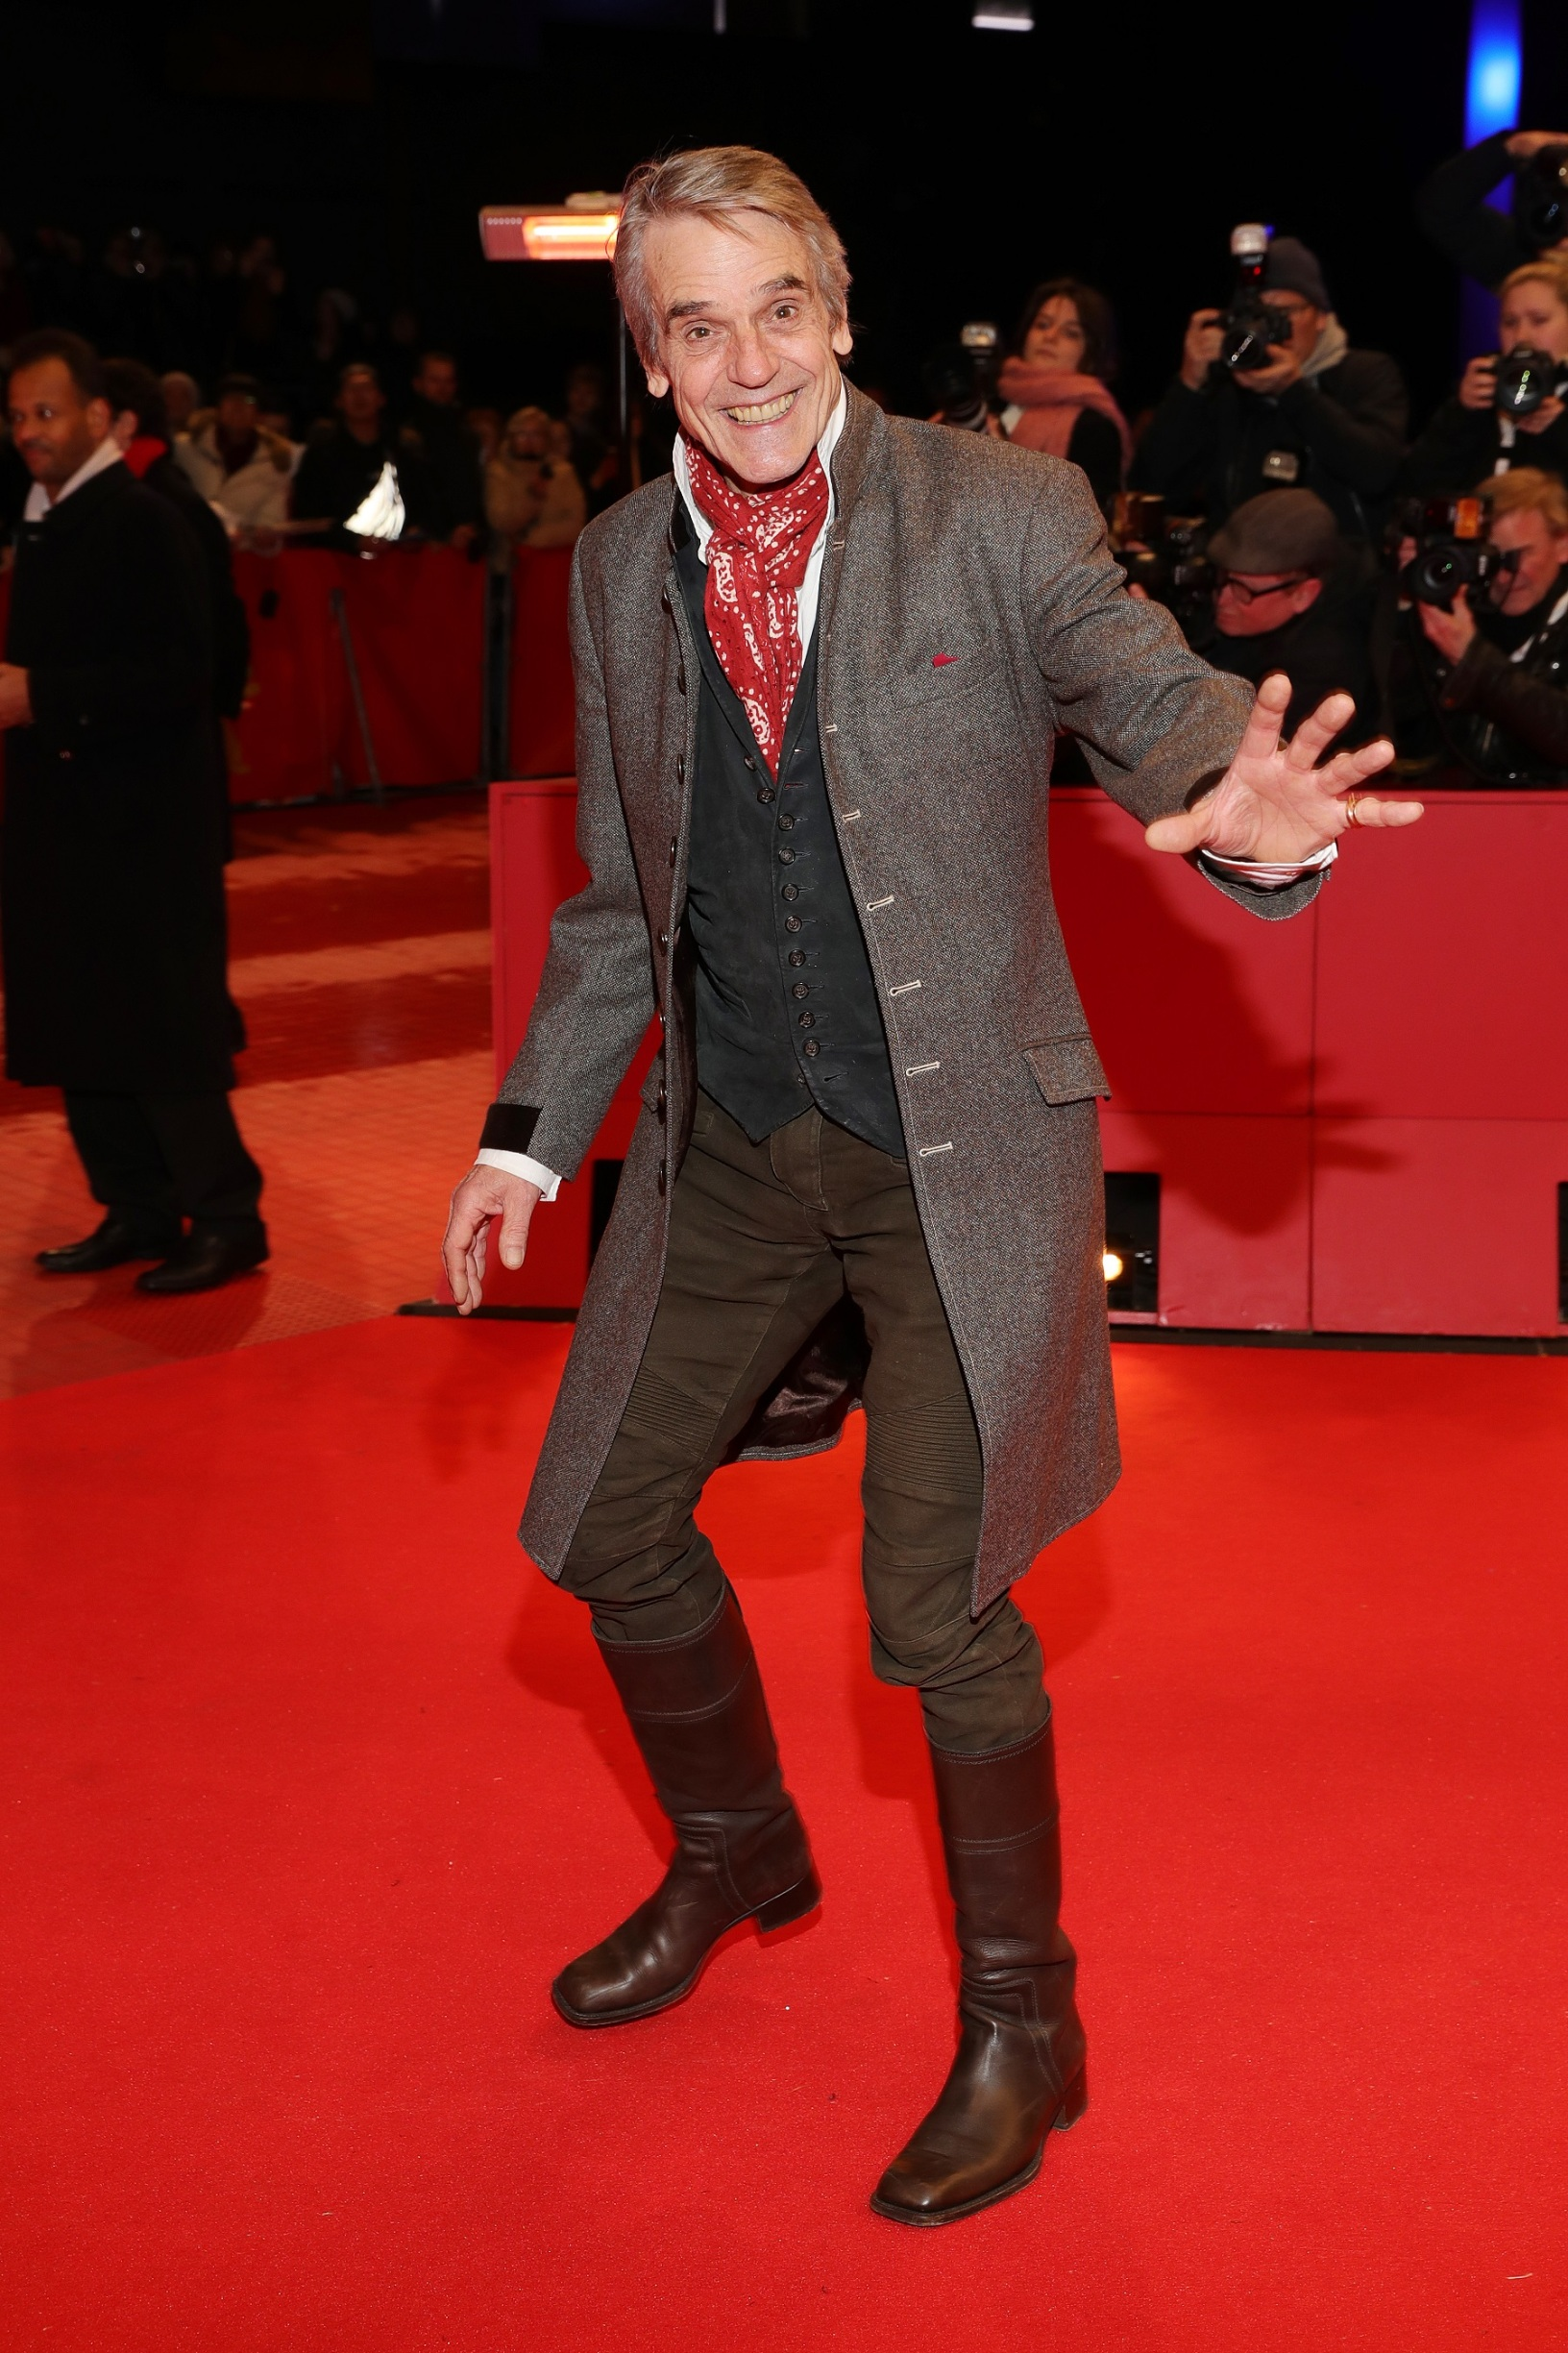 BERLIN, GERMANY - FEBRUARY 20: President of the International Jury Jeremy Irons arrives for the opening ceremony and